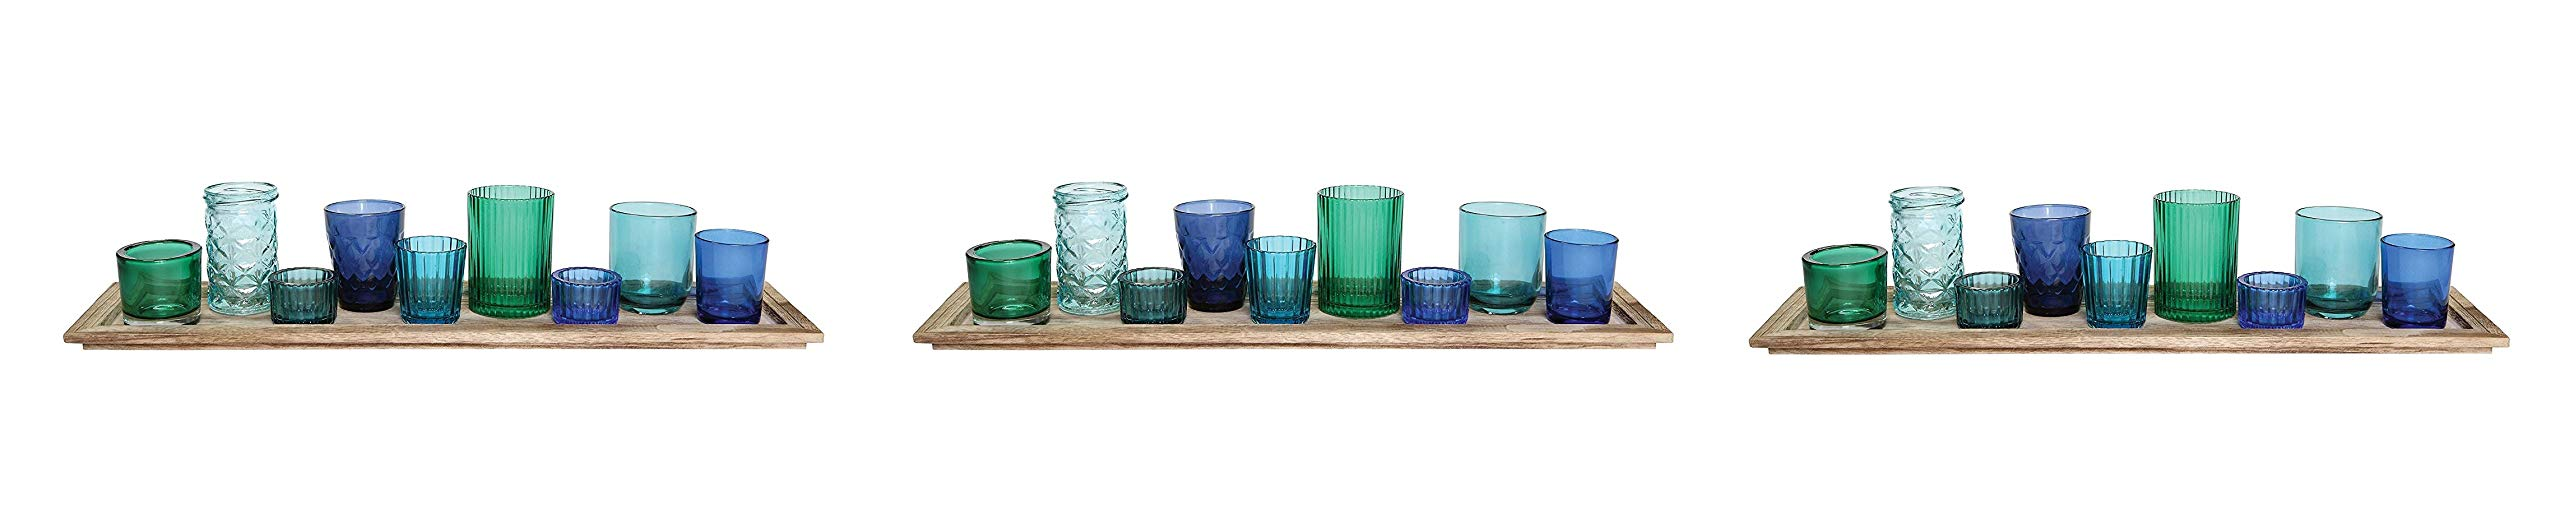 Creative Co-op DA5406 Wood Tray with 9 Blue & Green Glass Votive Holders (Pack of 3)